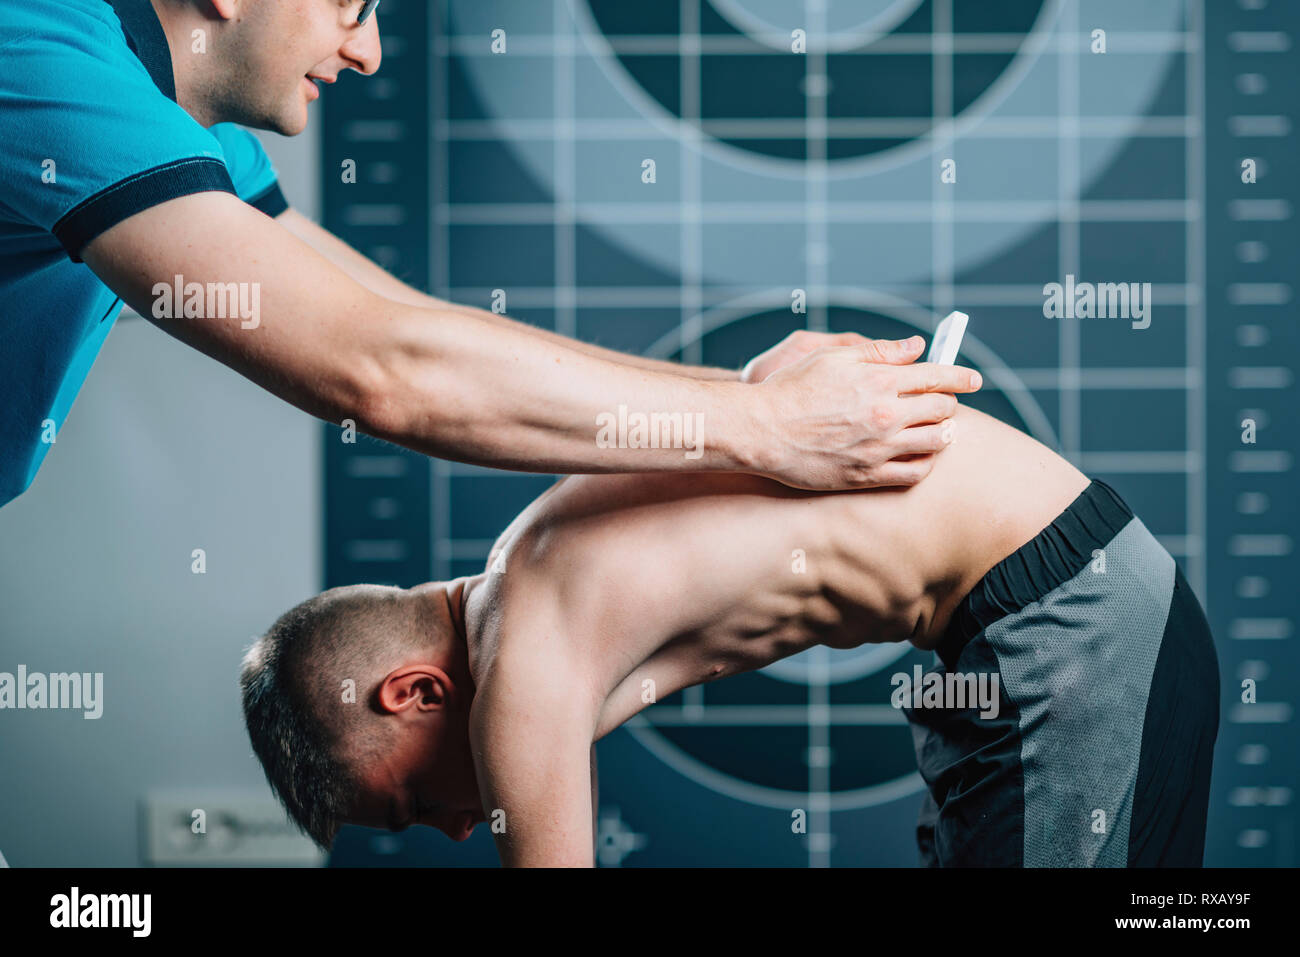 Scoliosis screening with scoliometer - Stock Image